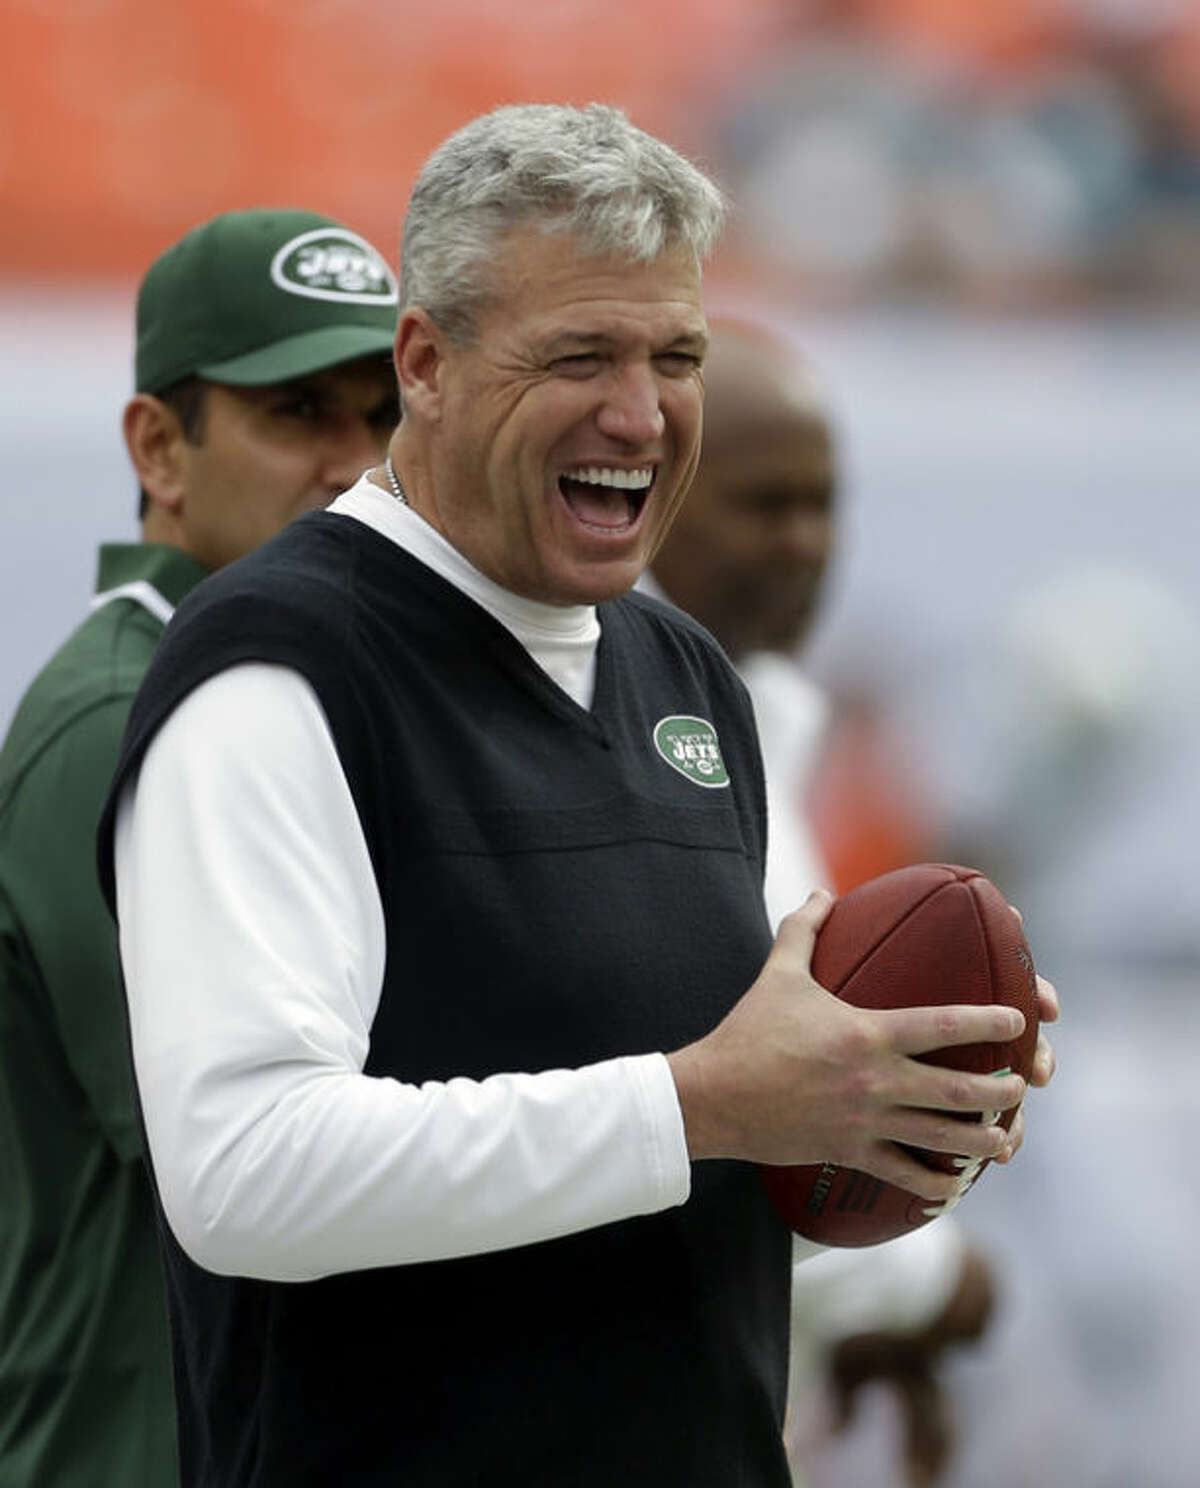 New York Jets head coach Rex Ryan has a laugh on the sideline before an NFL football game against the Miami Dolphins in Miami Gardens, Fla., Sunday, Dec. 29, 2013. (AP Photo/Alan Diaz)